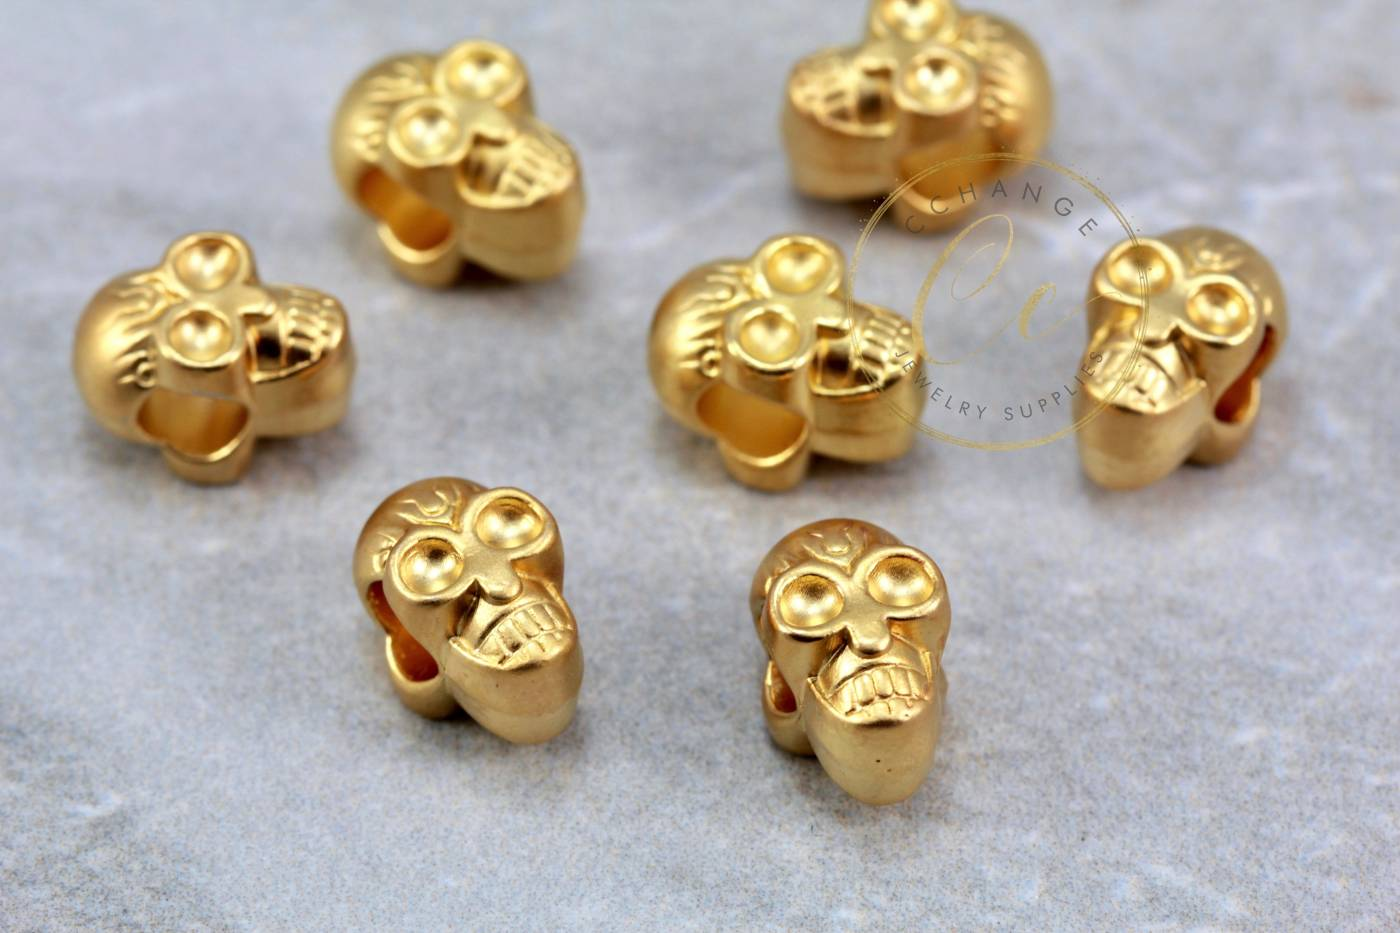 gold-plated-metal-skull-bead-charms.jpg